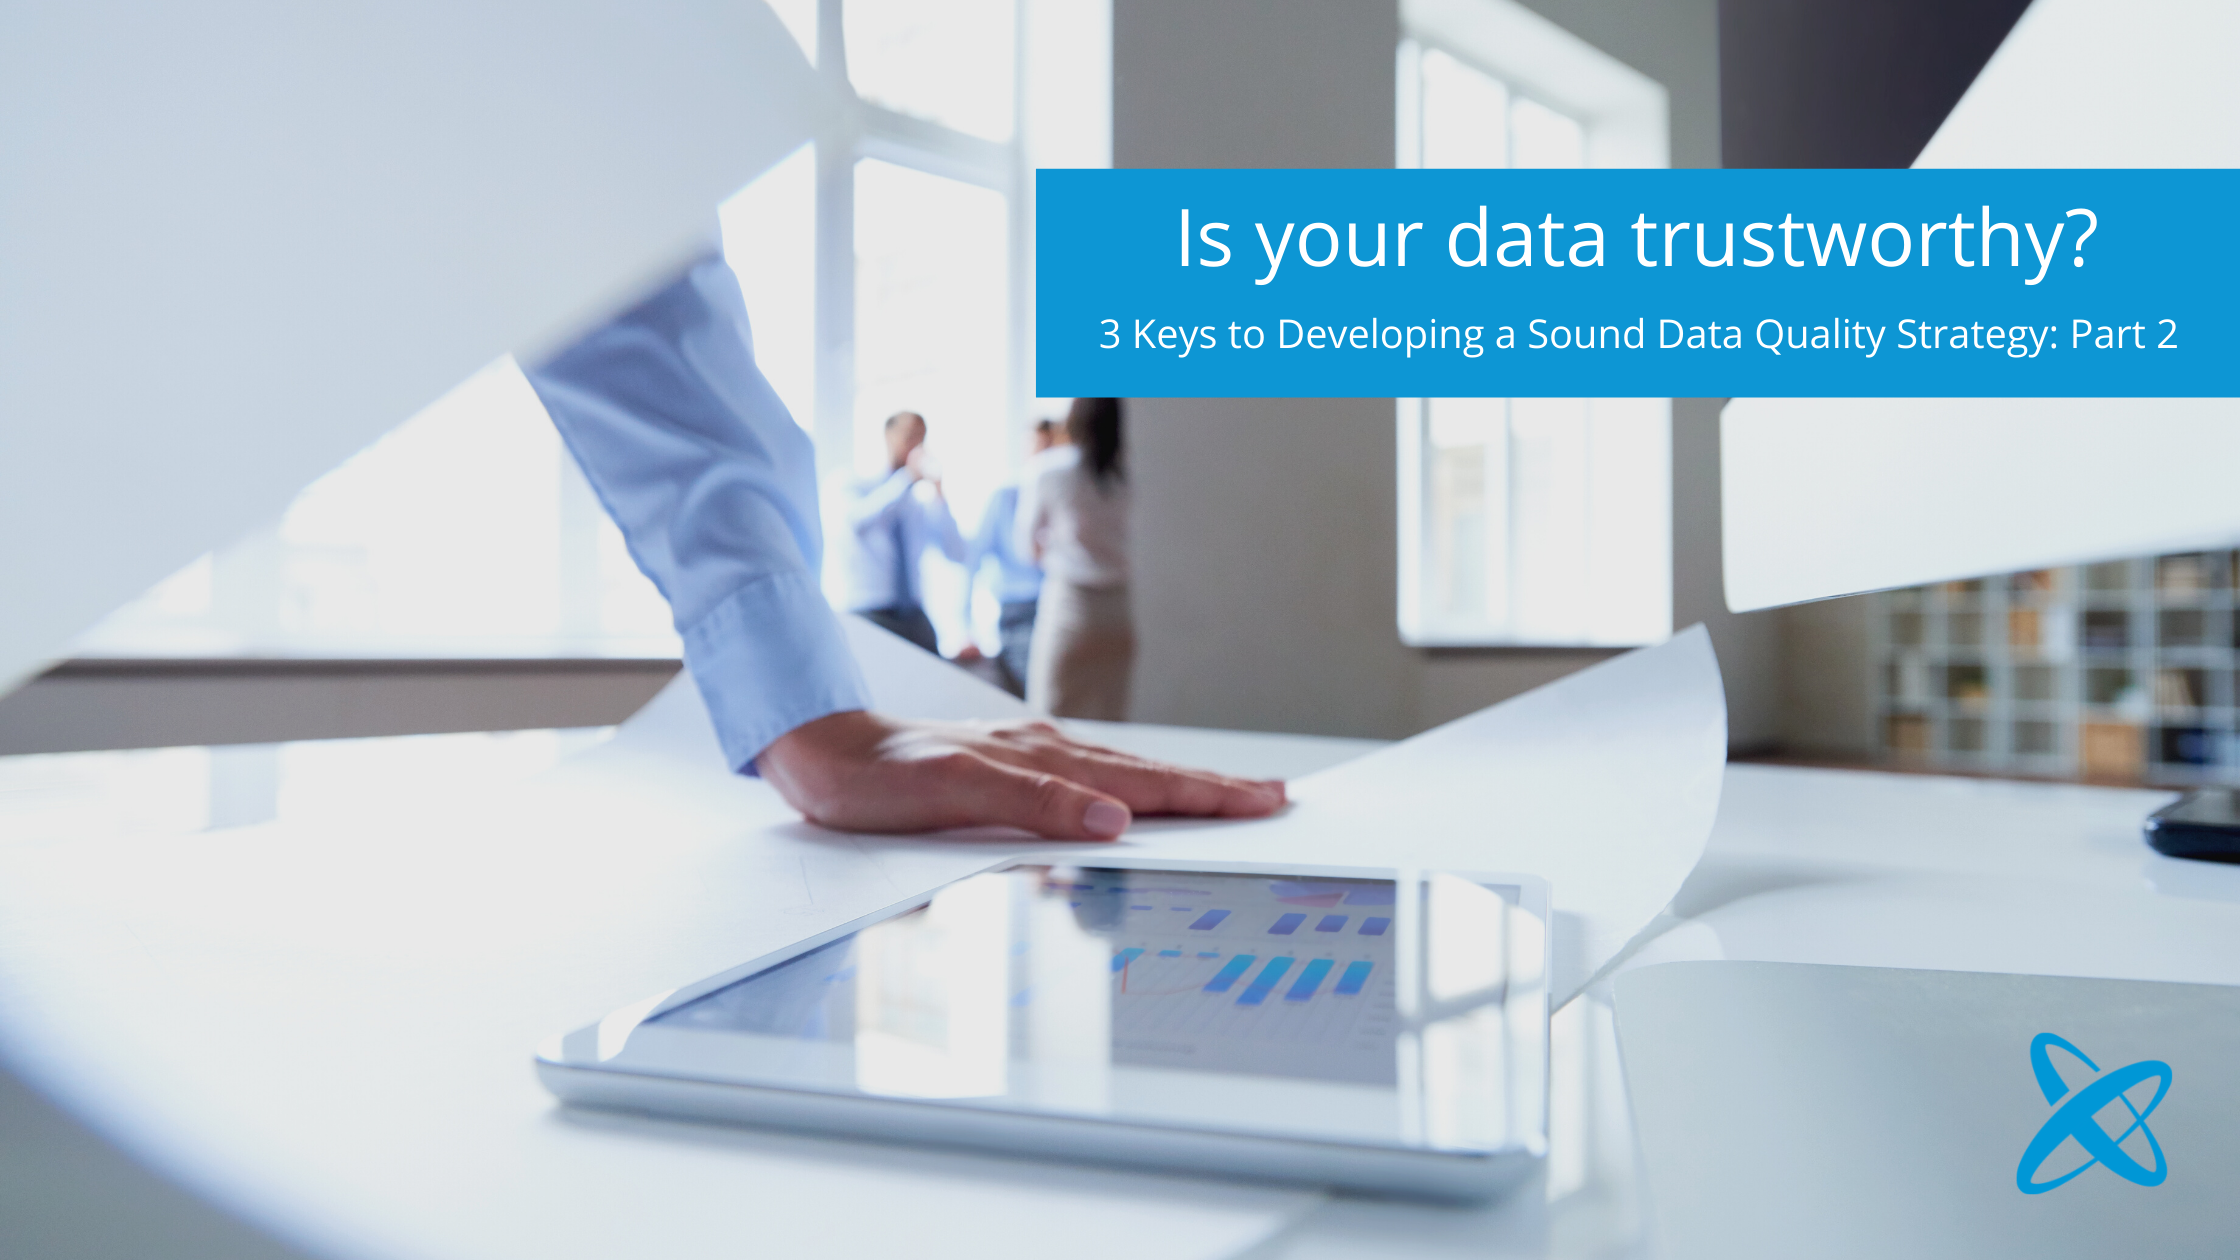 Part 2: 3 Keys To Developing A Data Quality Strategy You Can Trust